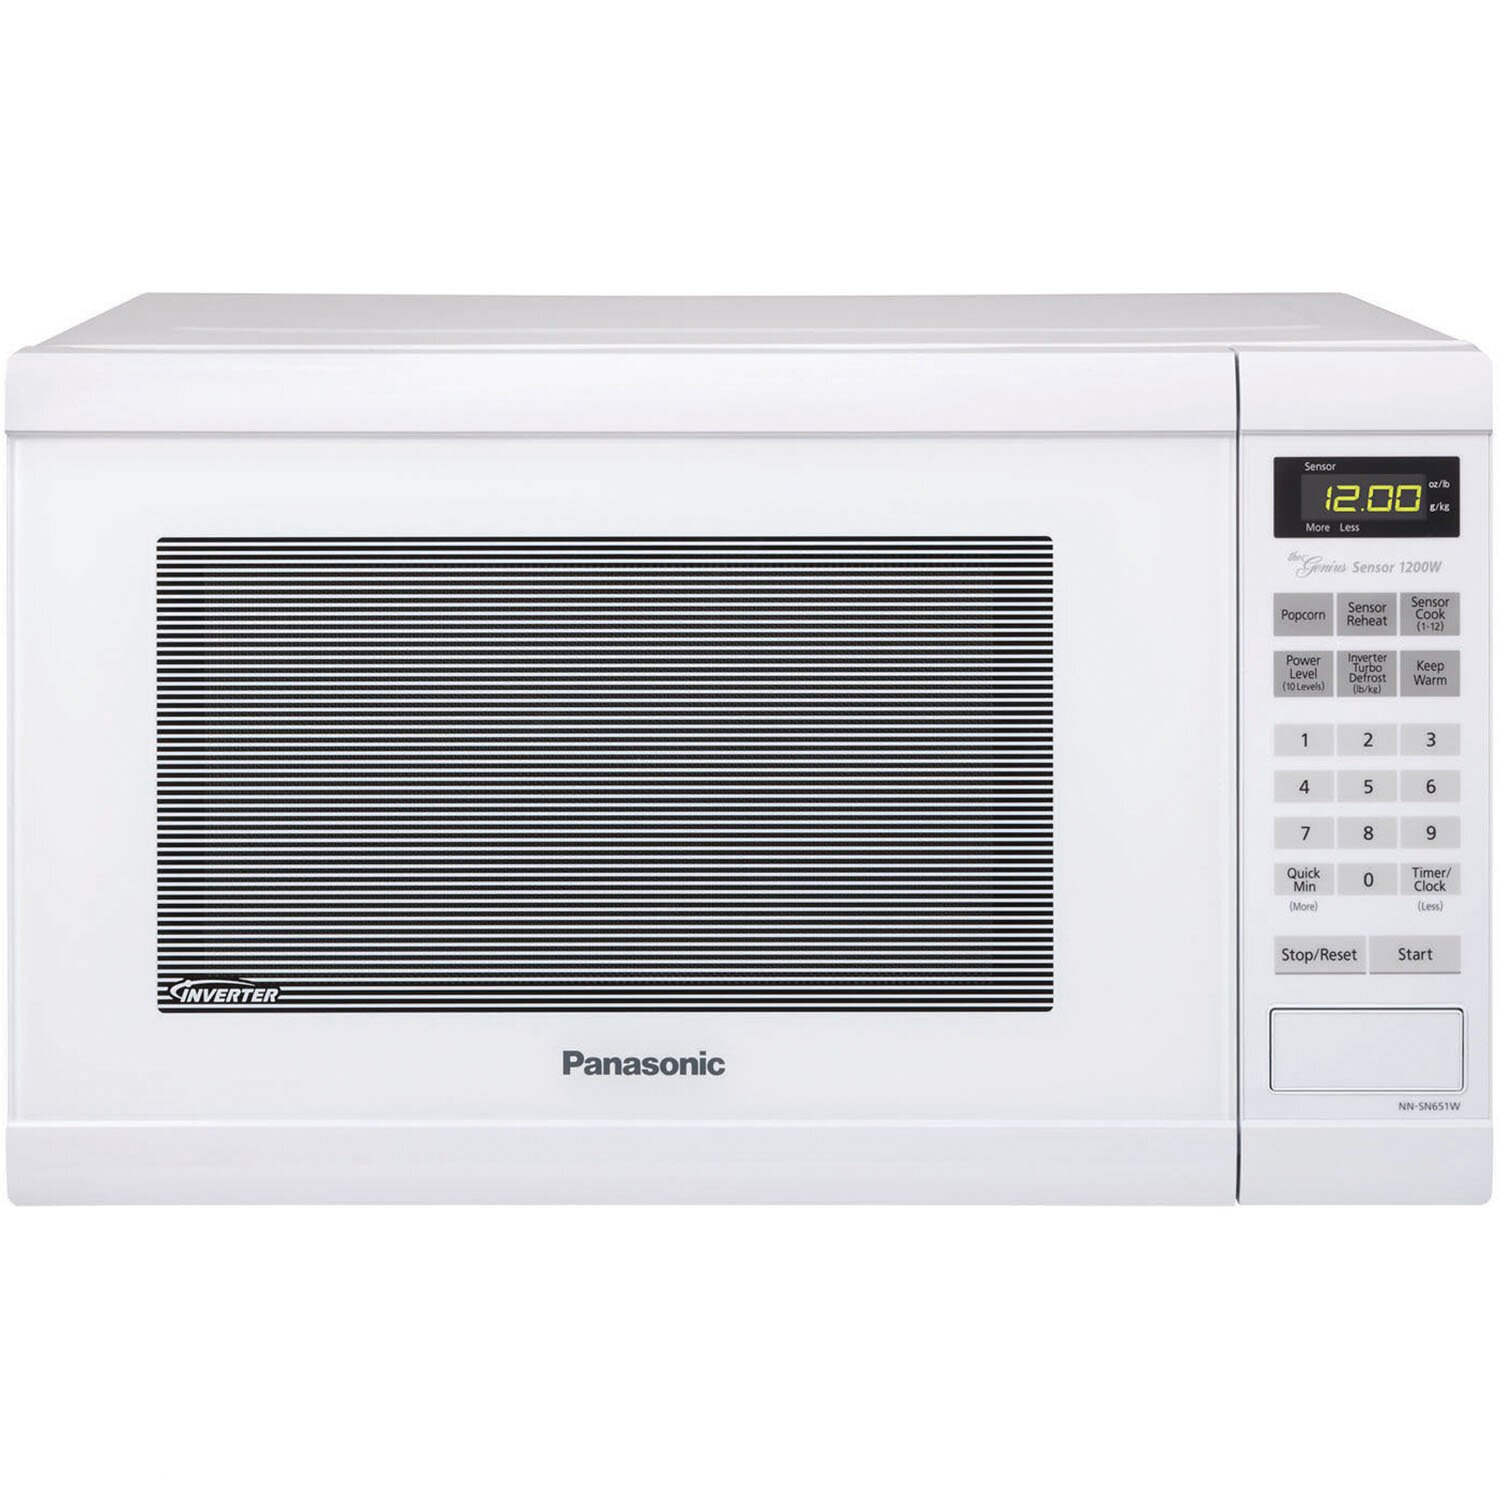 Countertop Microwave At Best Buy : Kitchen & Tabletop Kitchen Appliances ... Panasonic Part #: NN-SN651B ...